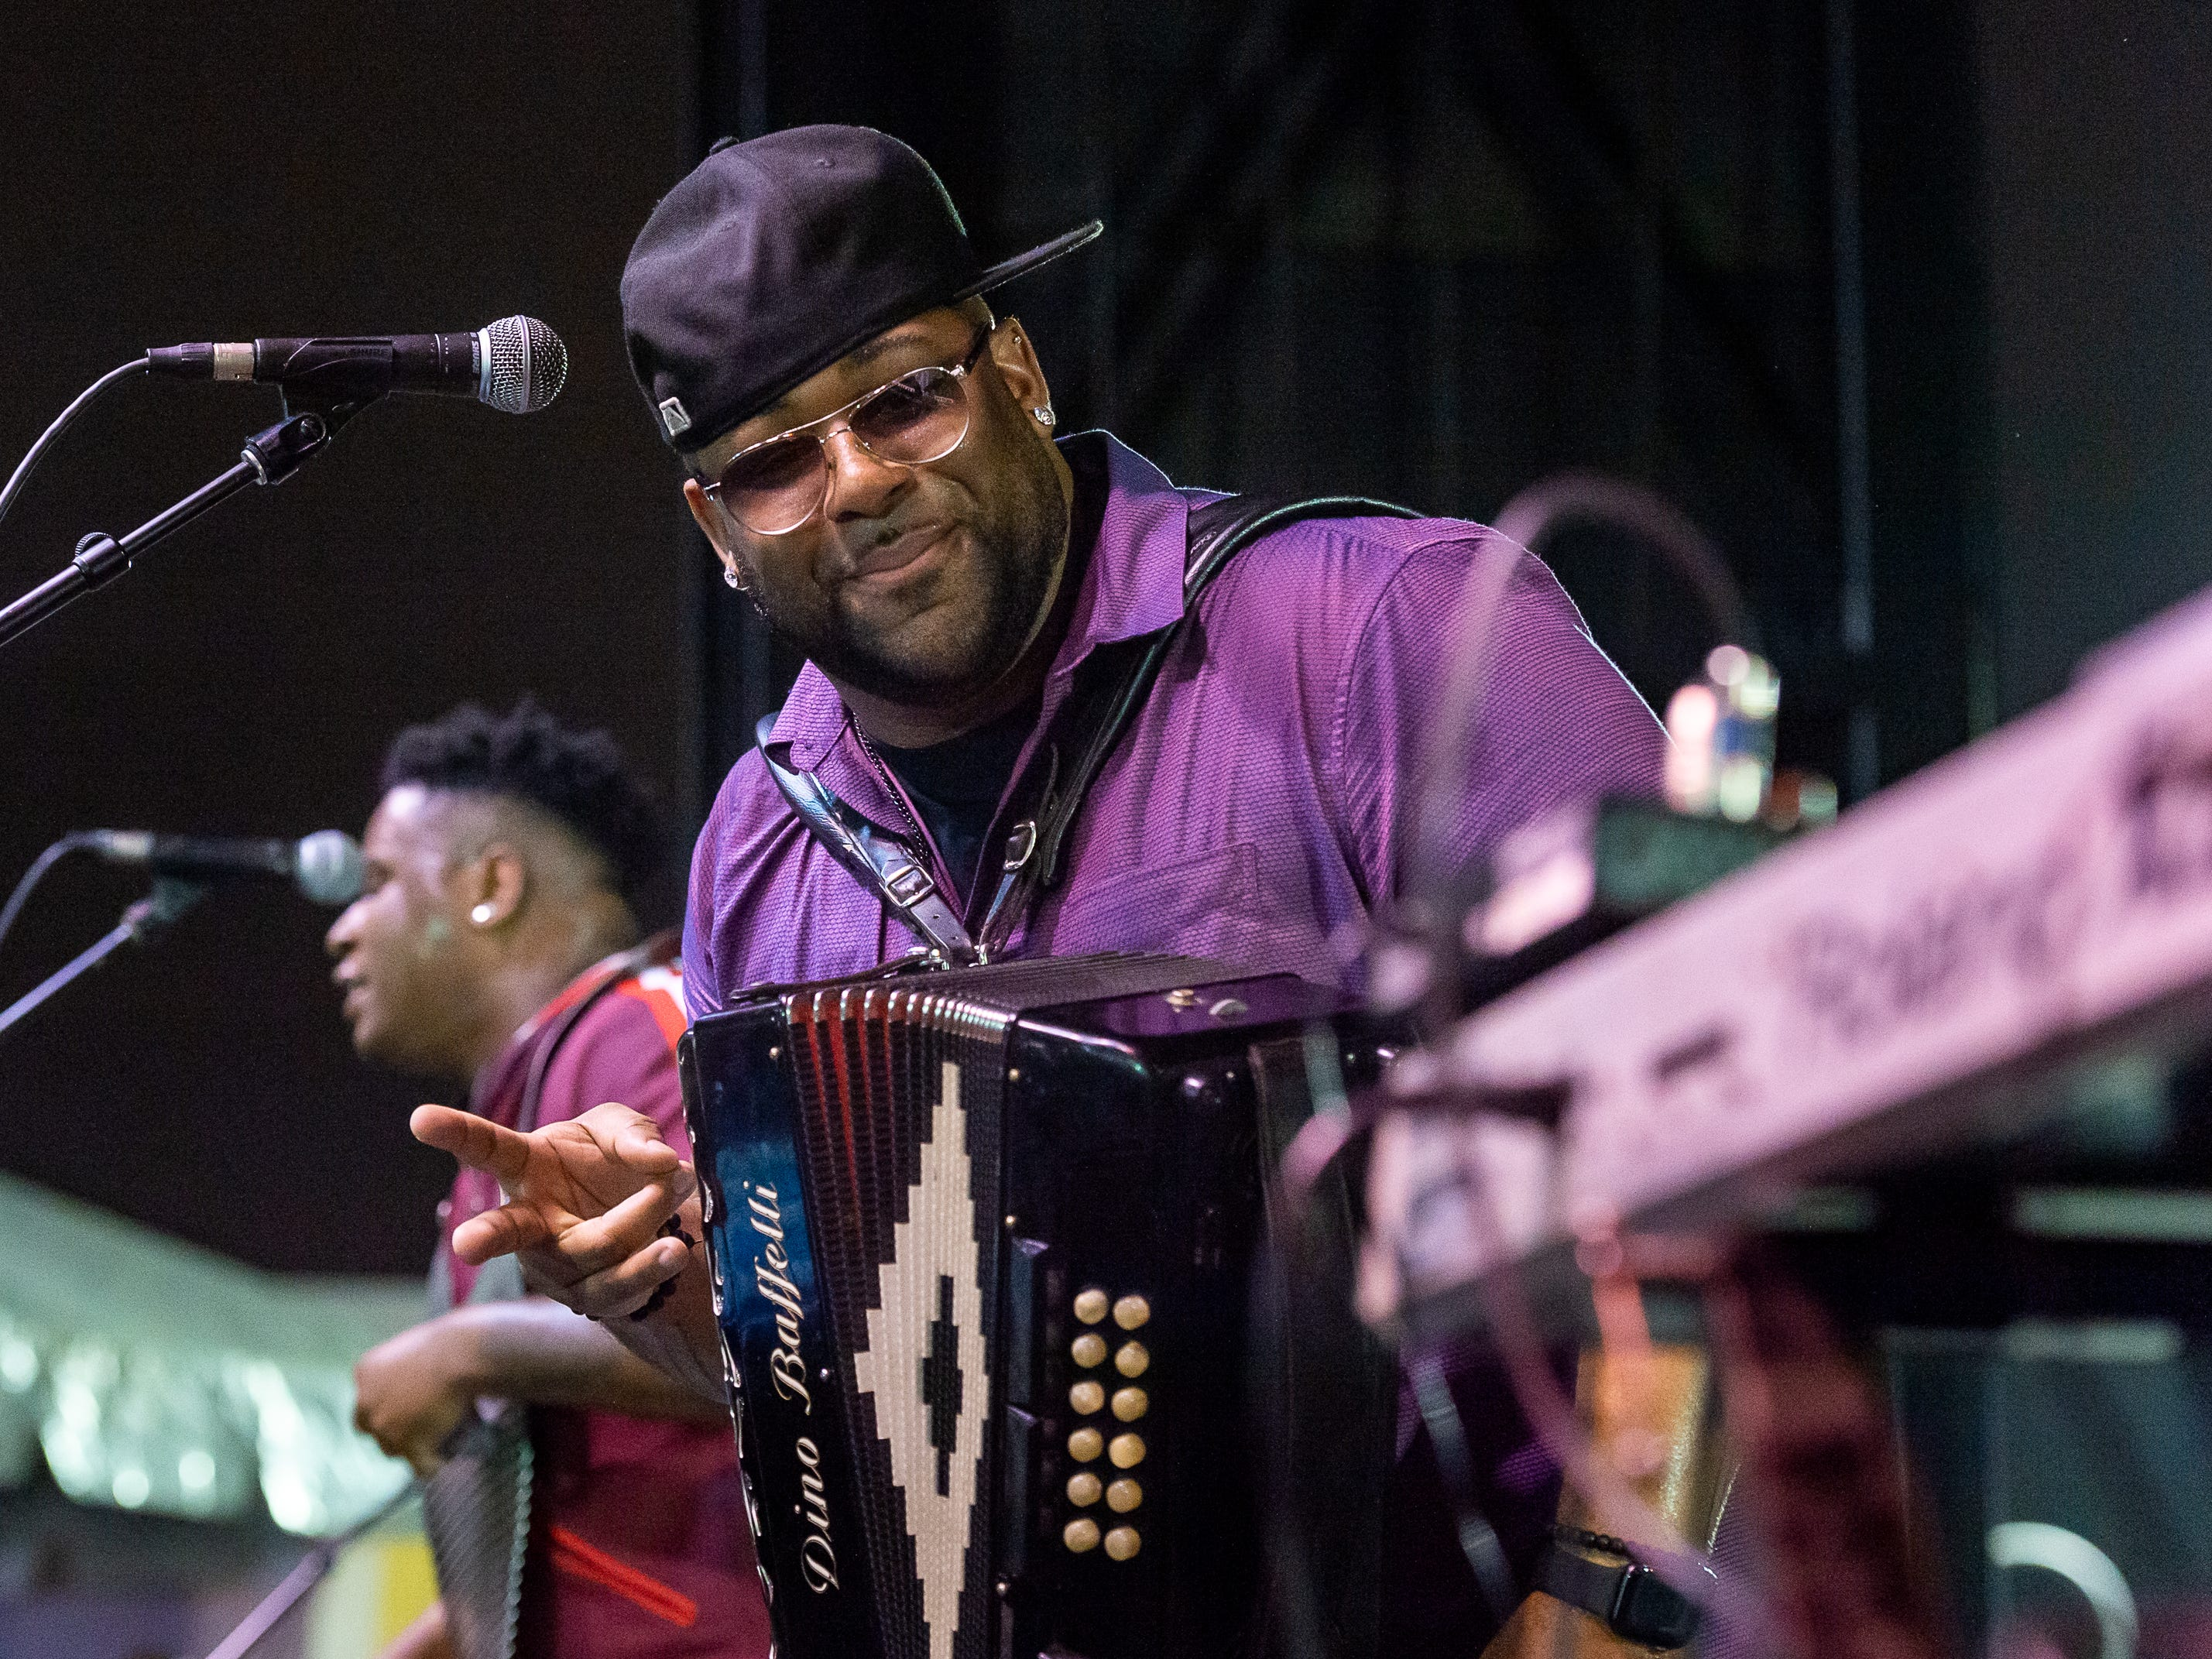 Chris Ardoin performs at the Scott Boudin Festival. Saturday, April 6, 2019.